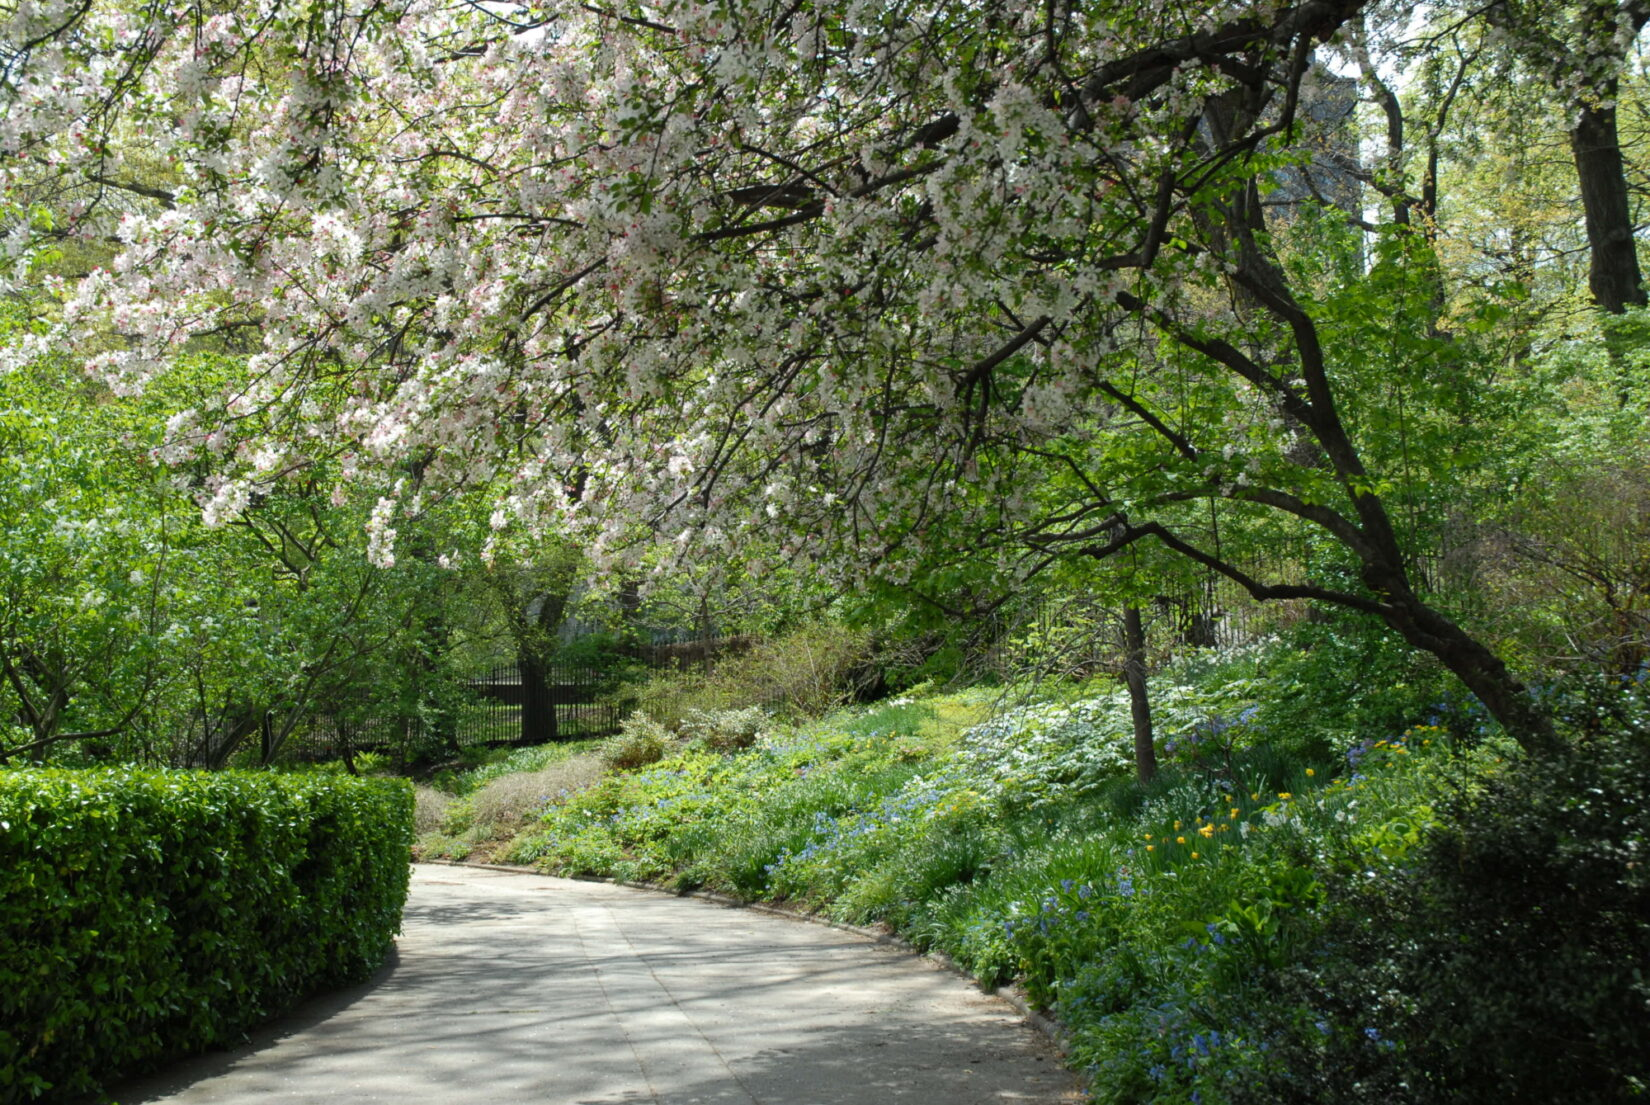 White blossoms arch over a curving path.